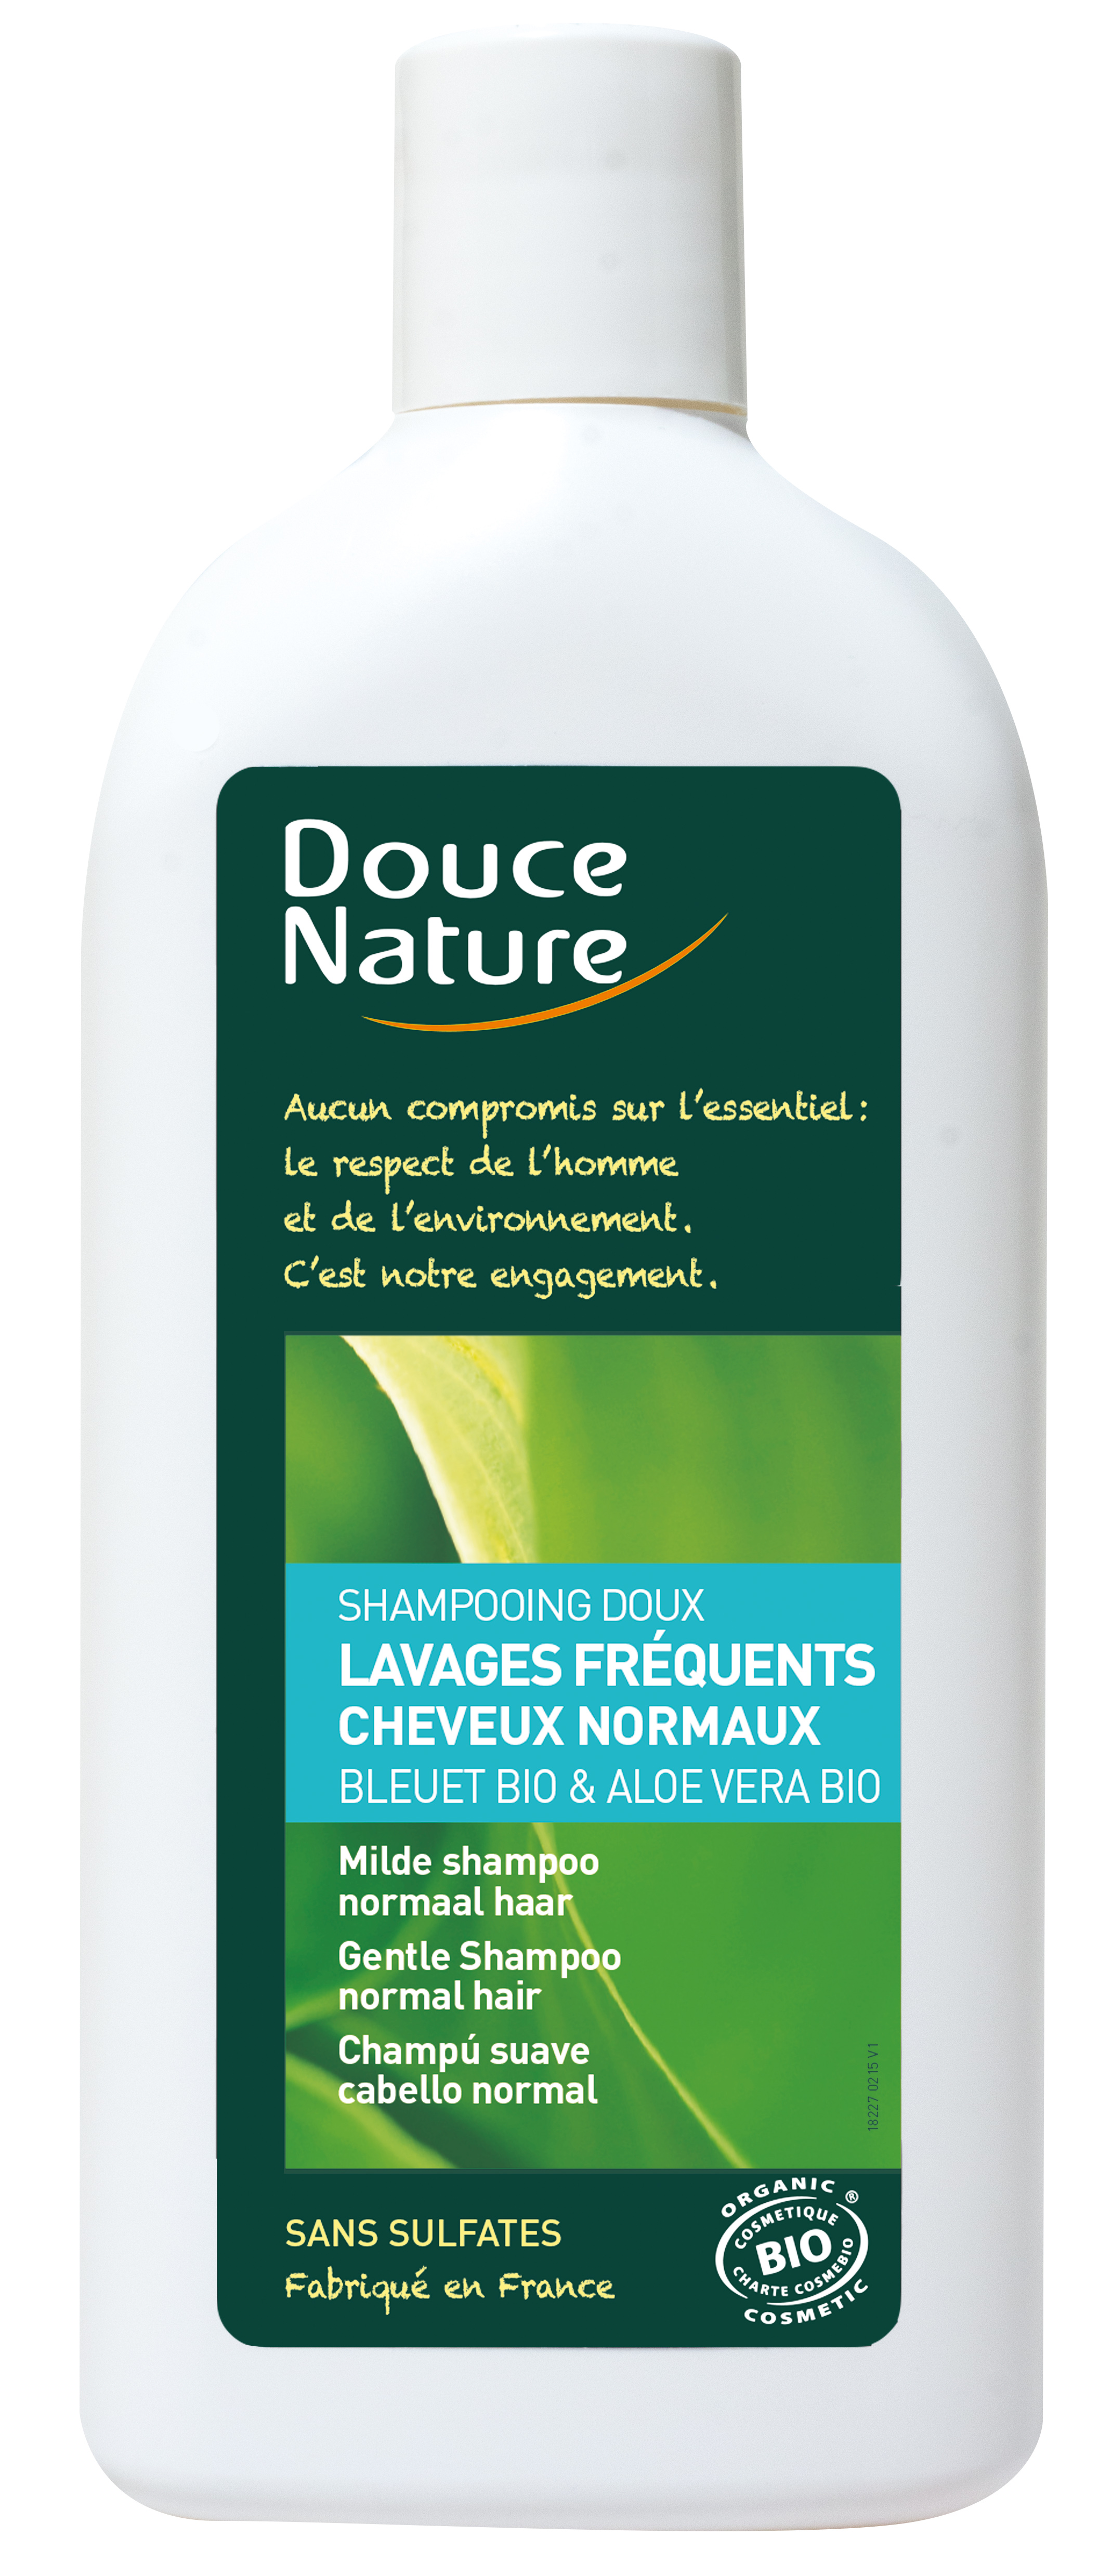 Shampooing doux cheveux normaux, Douce Nature (300 ml)